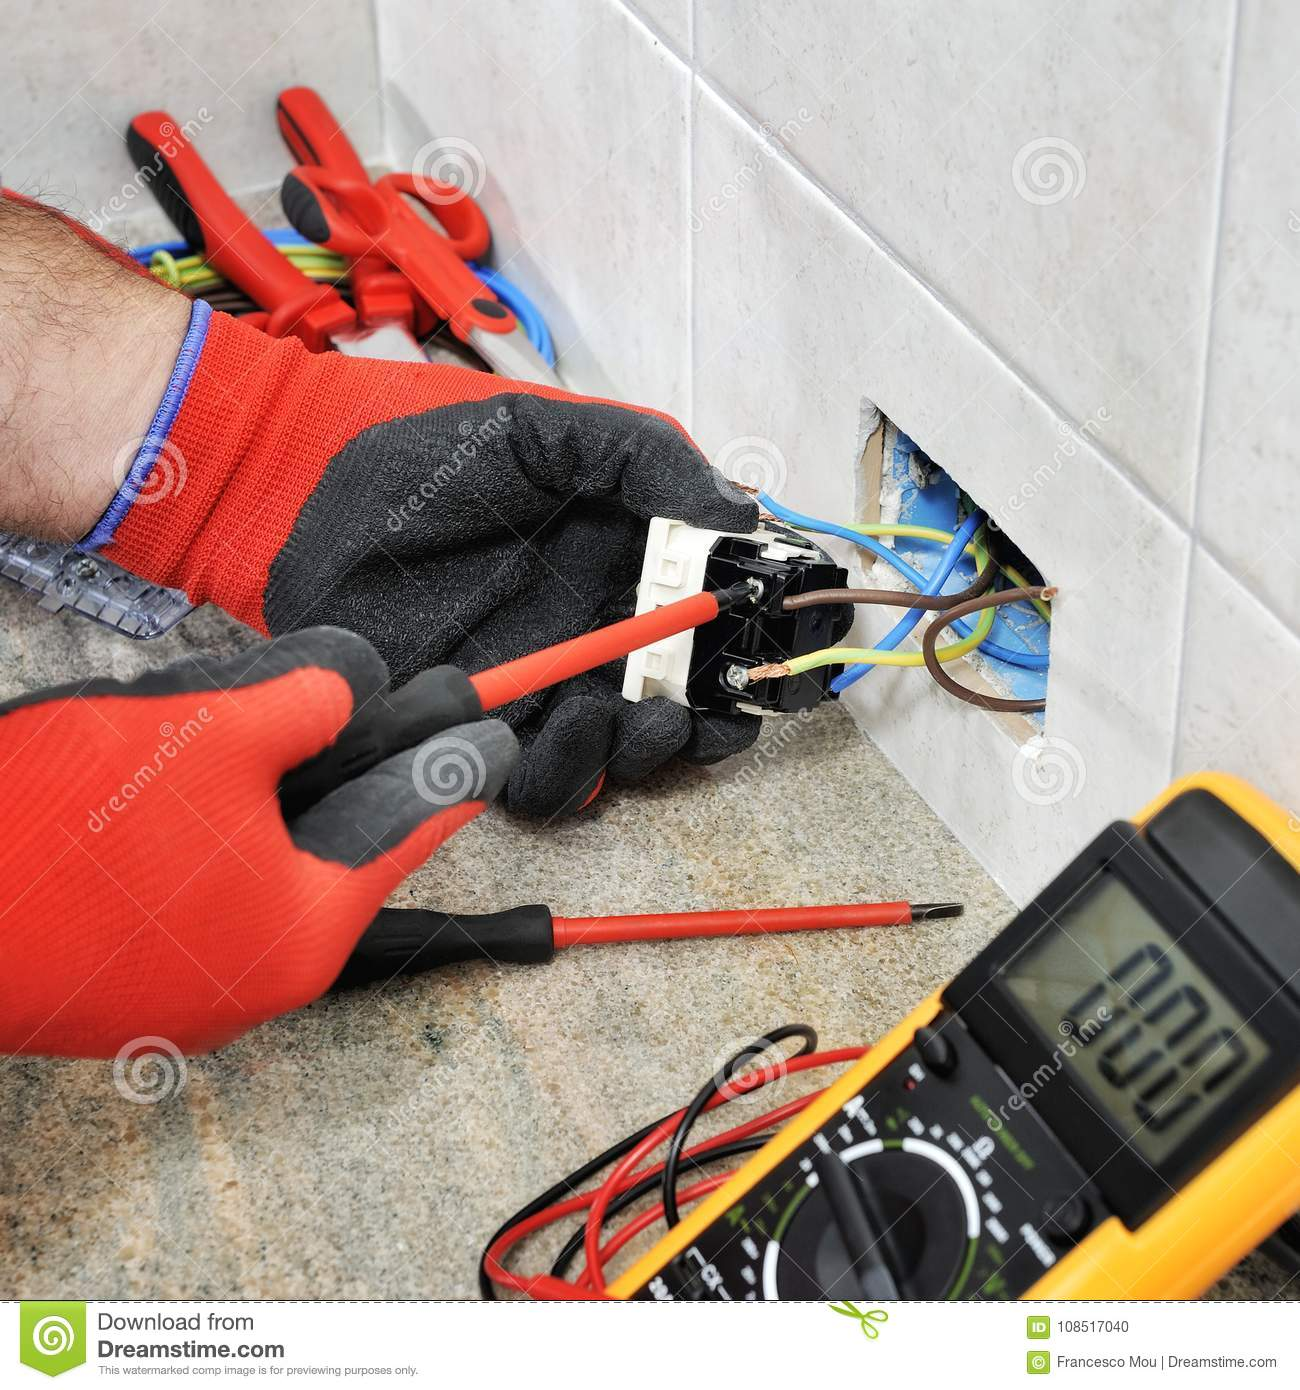 Electrician Technician Working Safely On A Residential Electrical Electric Wiring System